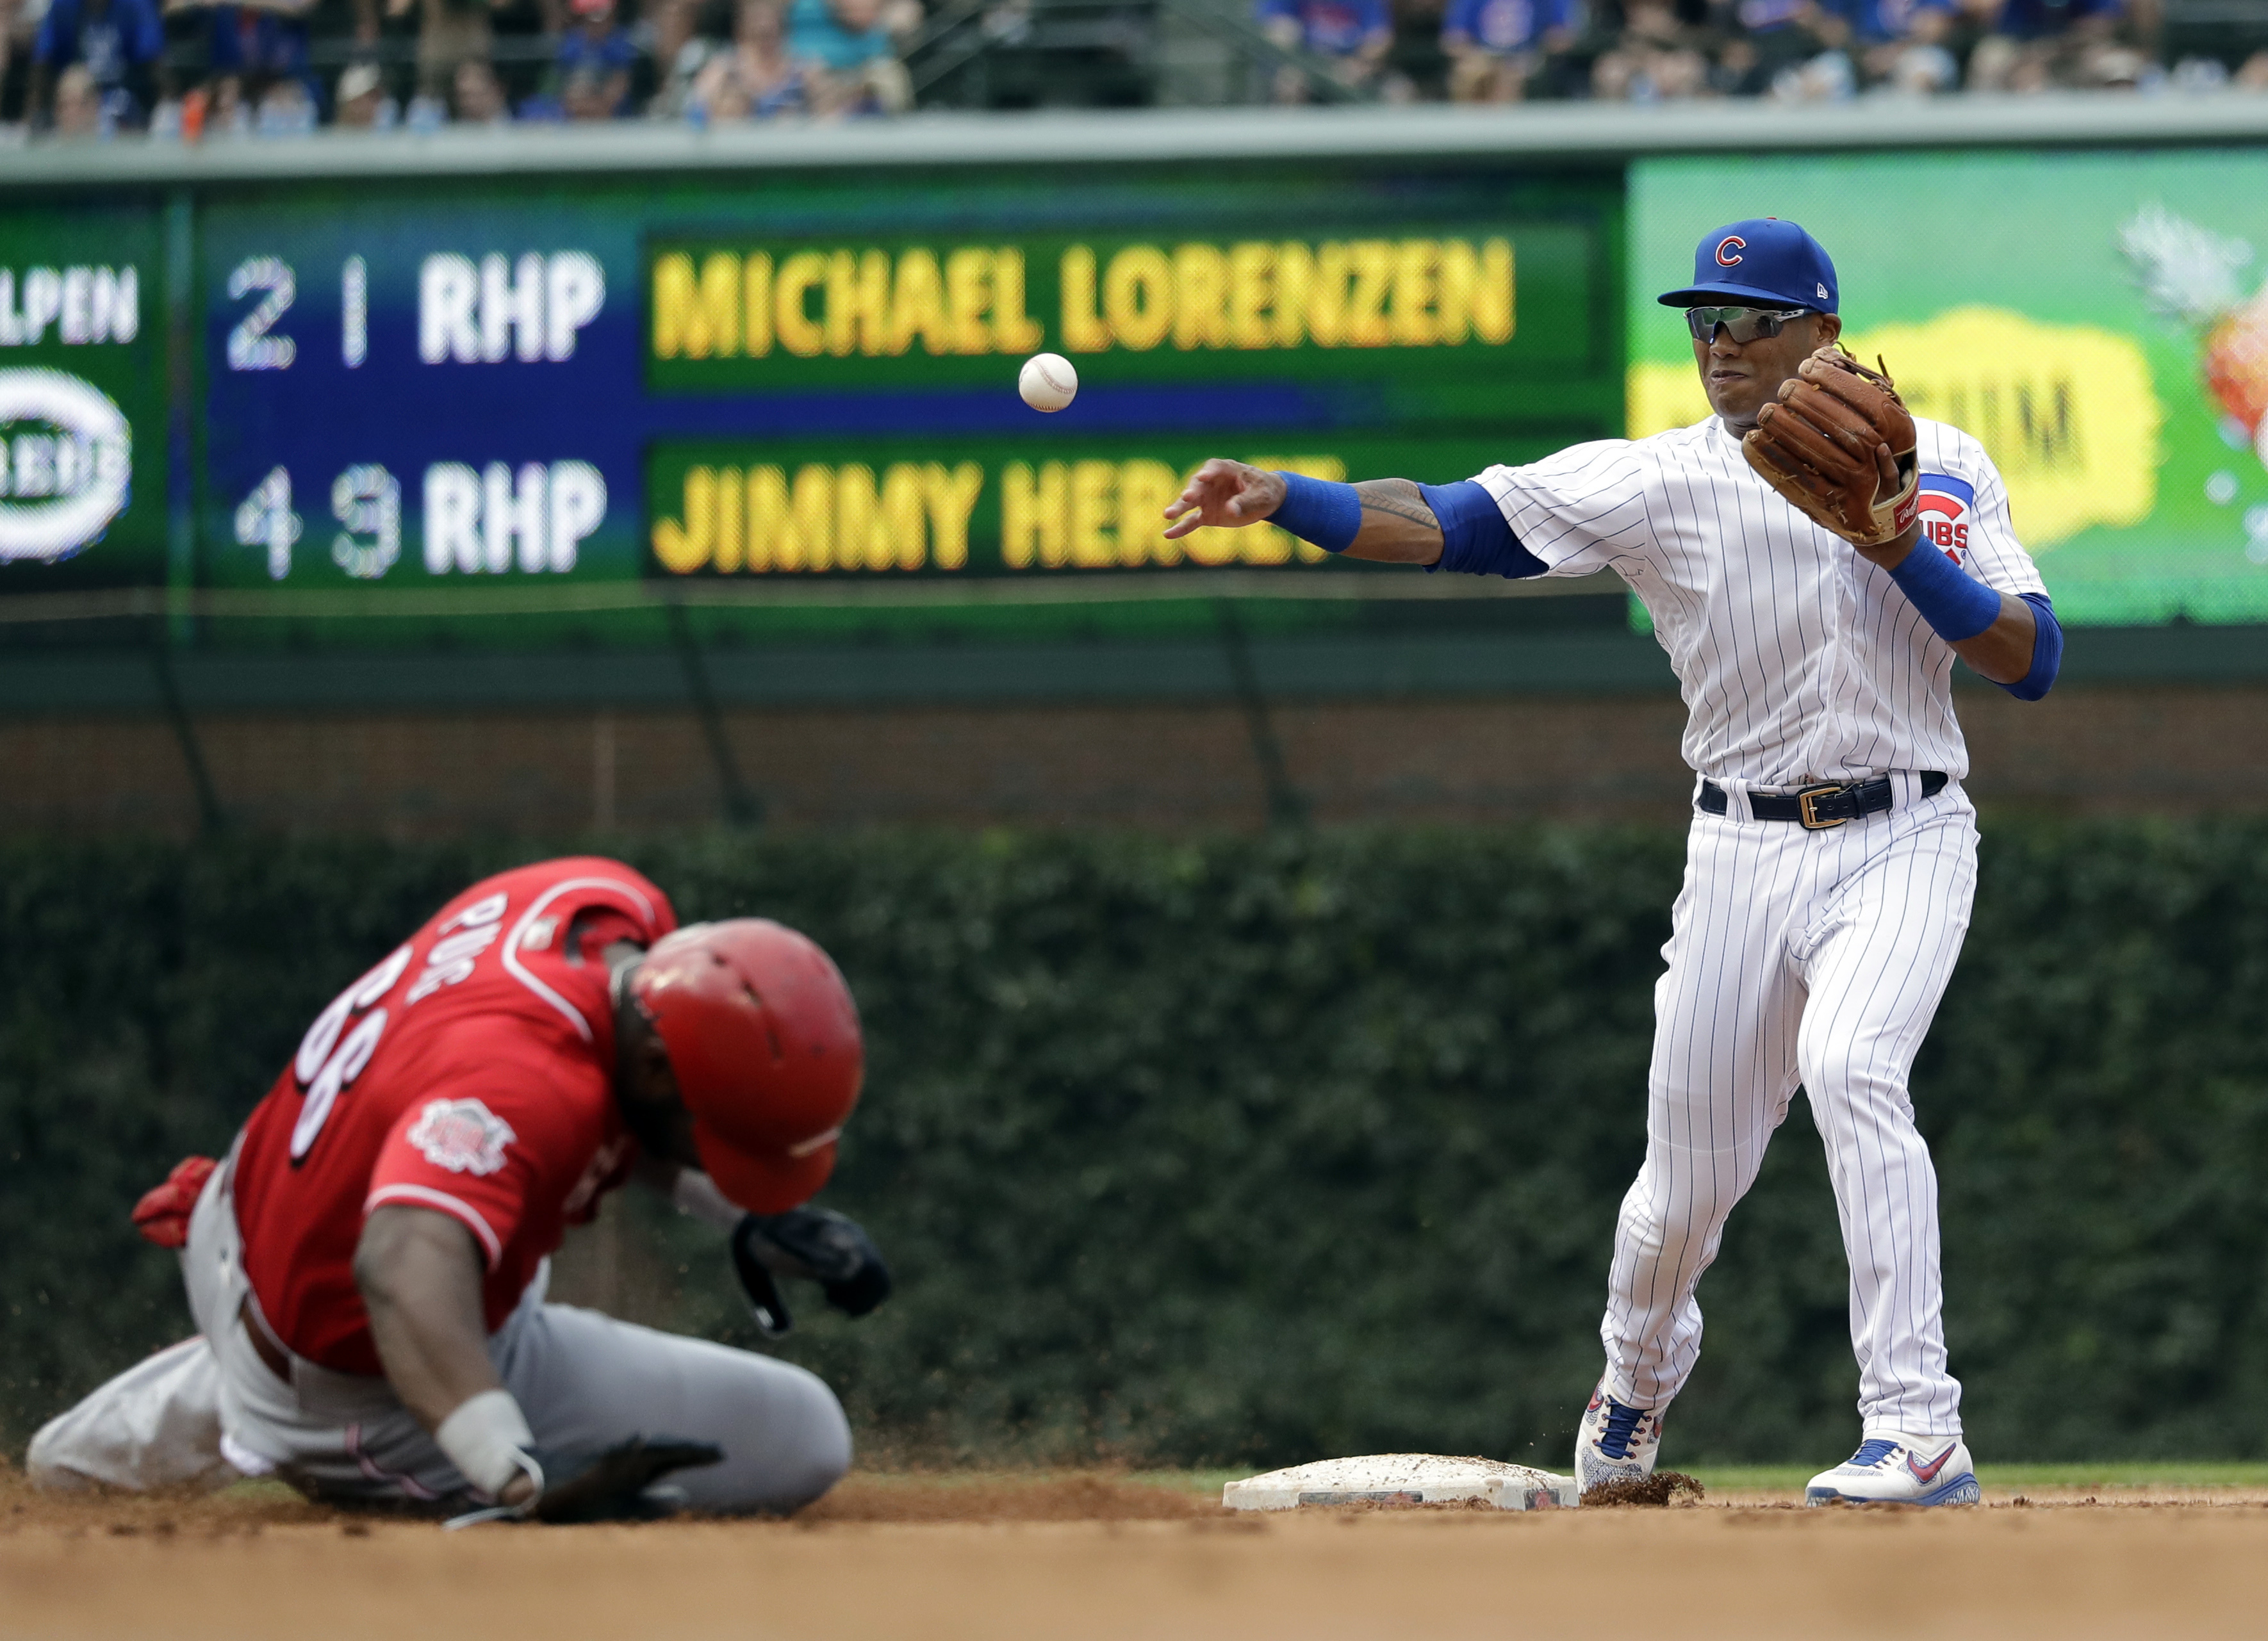 Cubs demote Russell, scratch Lester, bring Contreras off IL